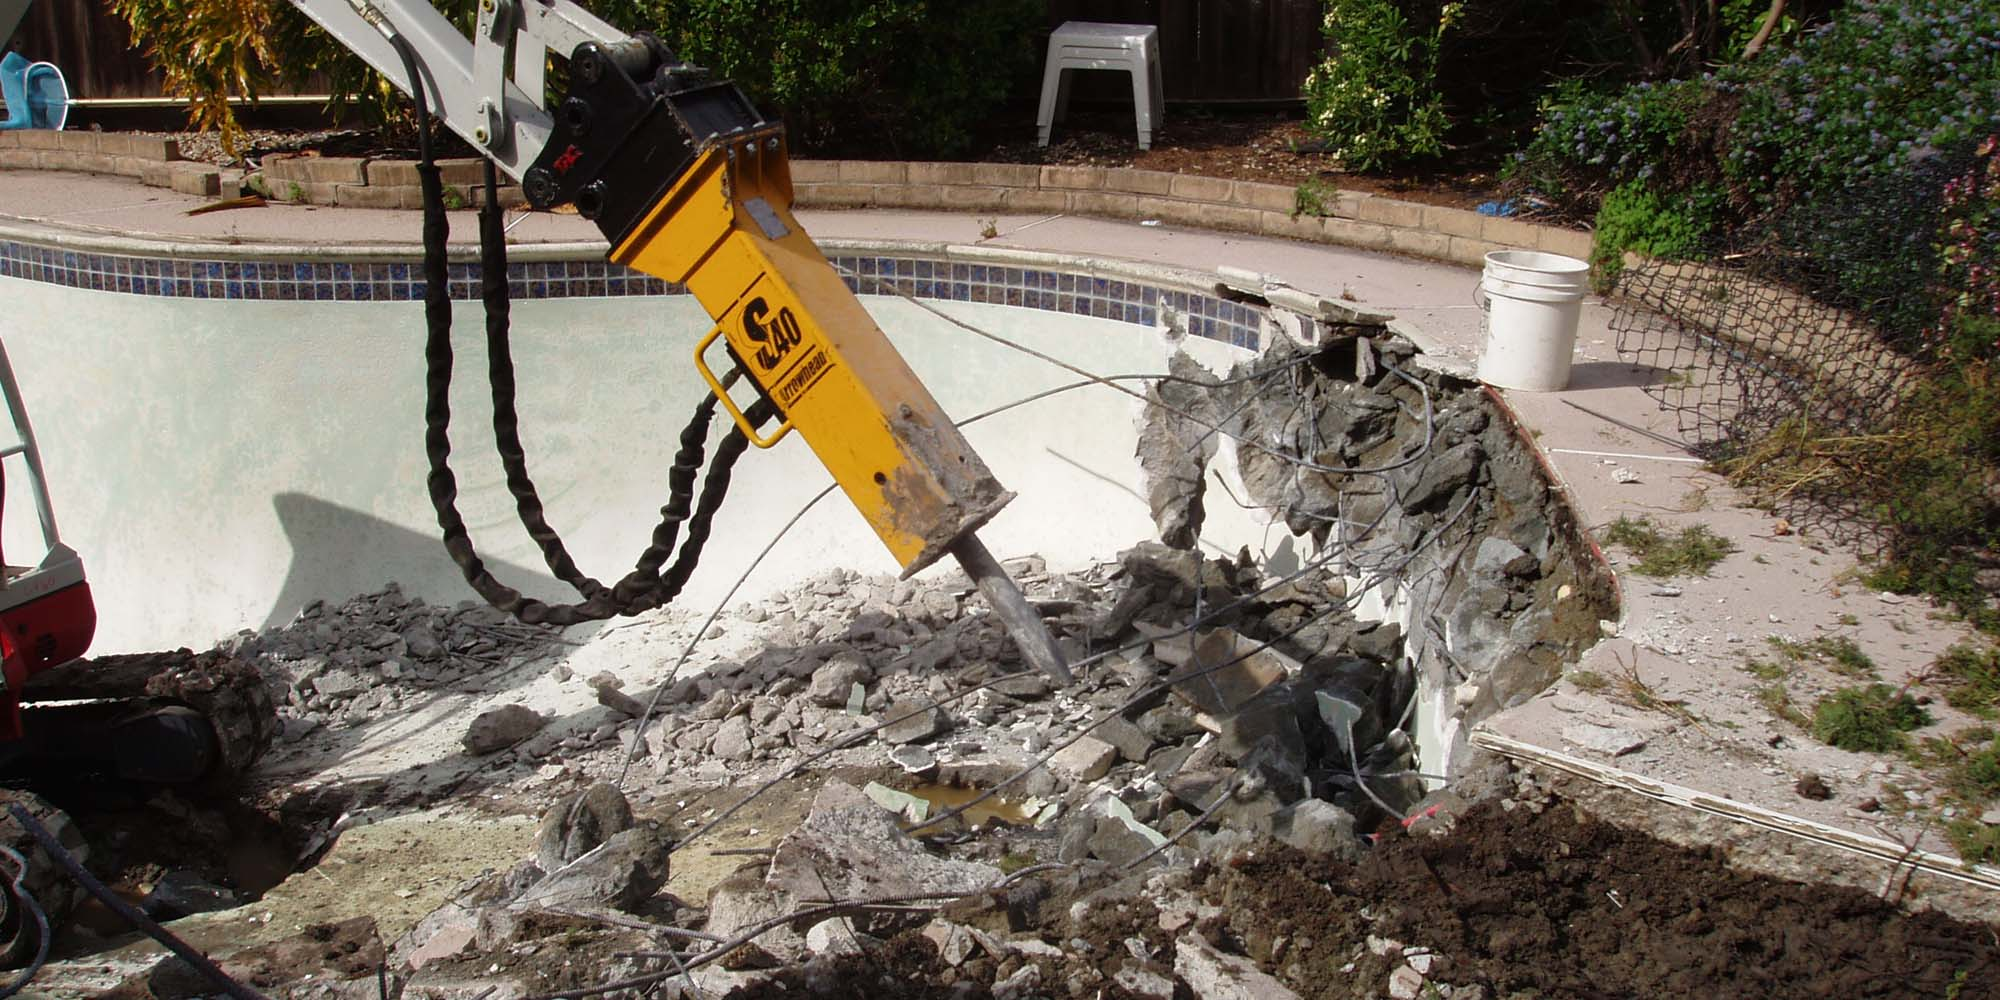 swimming pool removal NJ removing a concrete in ground swimming pool with machinery - Gambrick